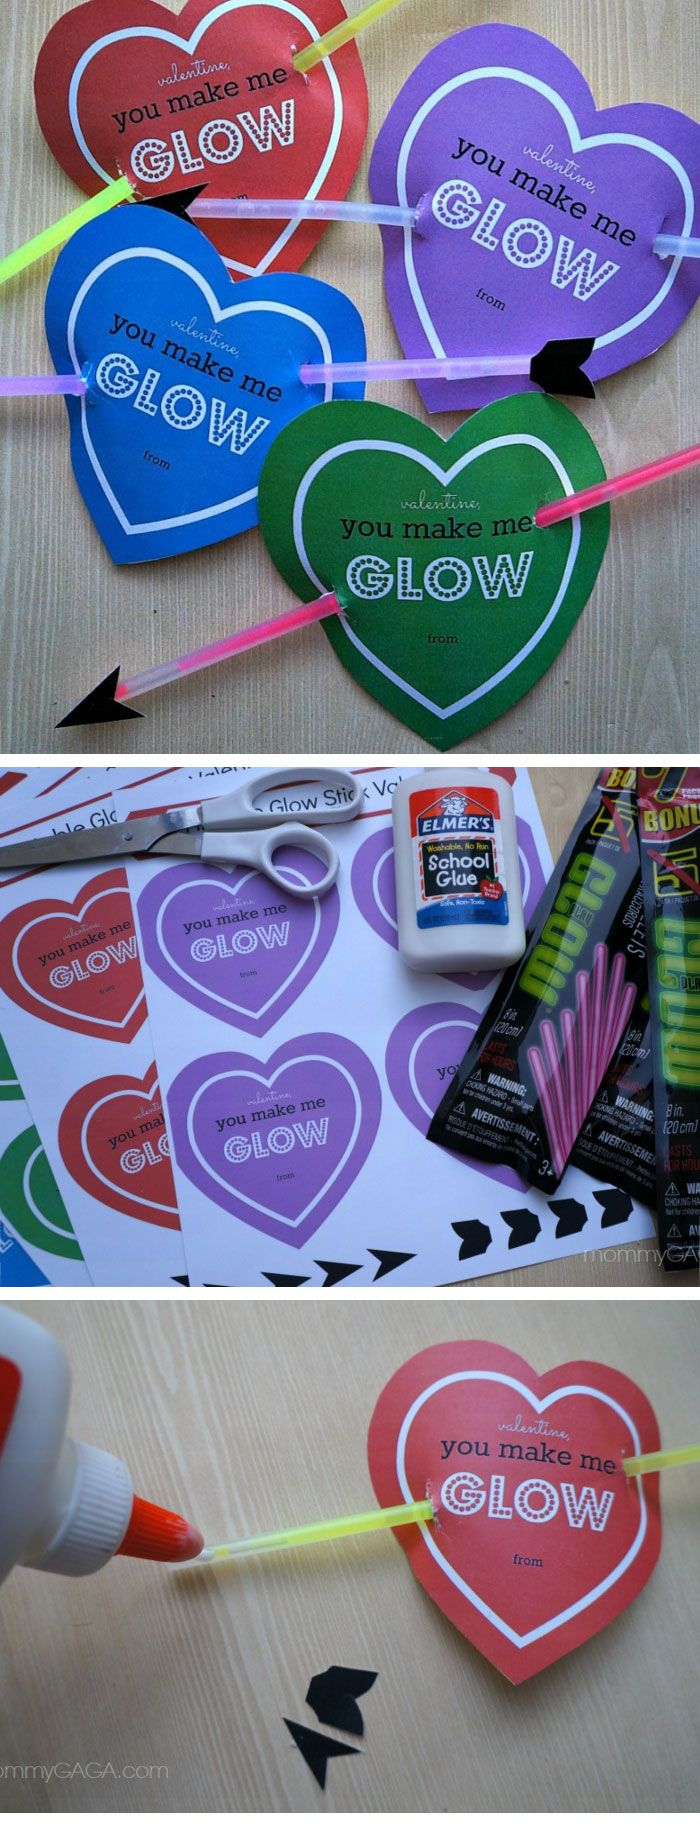 Cupid's Heart Glow Stick Valentines Cards | DIY Valentines Cards for Kids to Make | DIY Valentines Ideas for Kids to Make